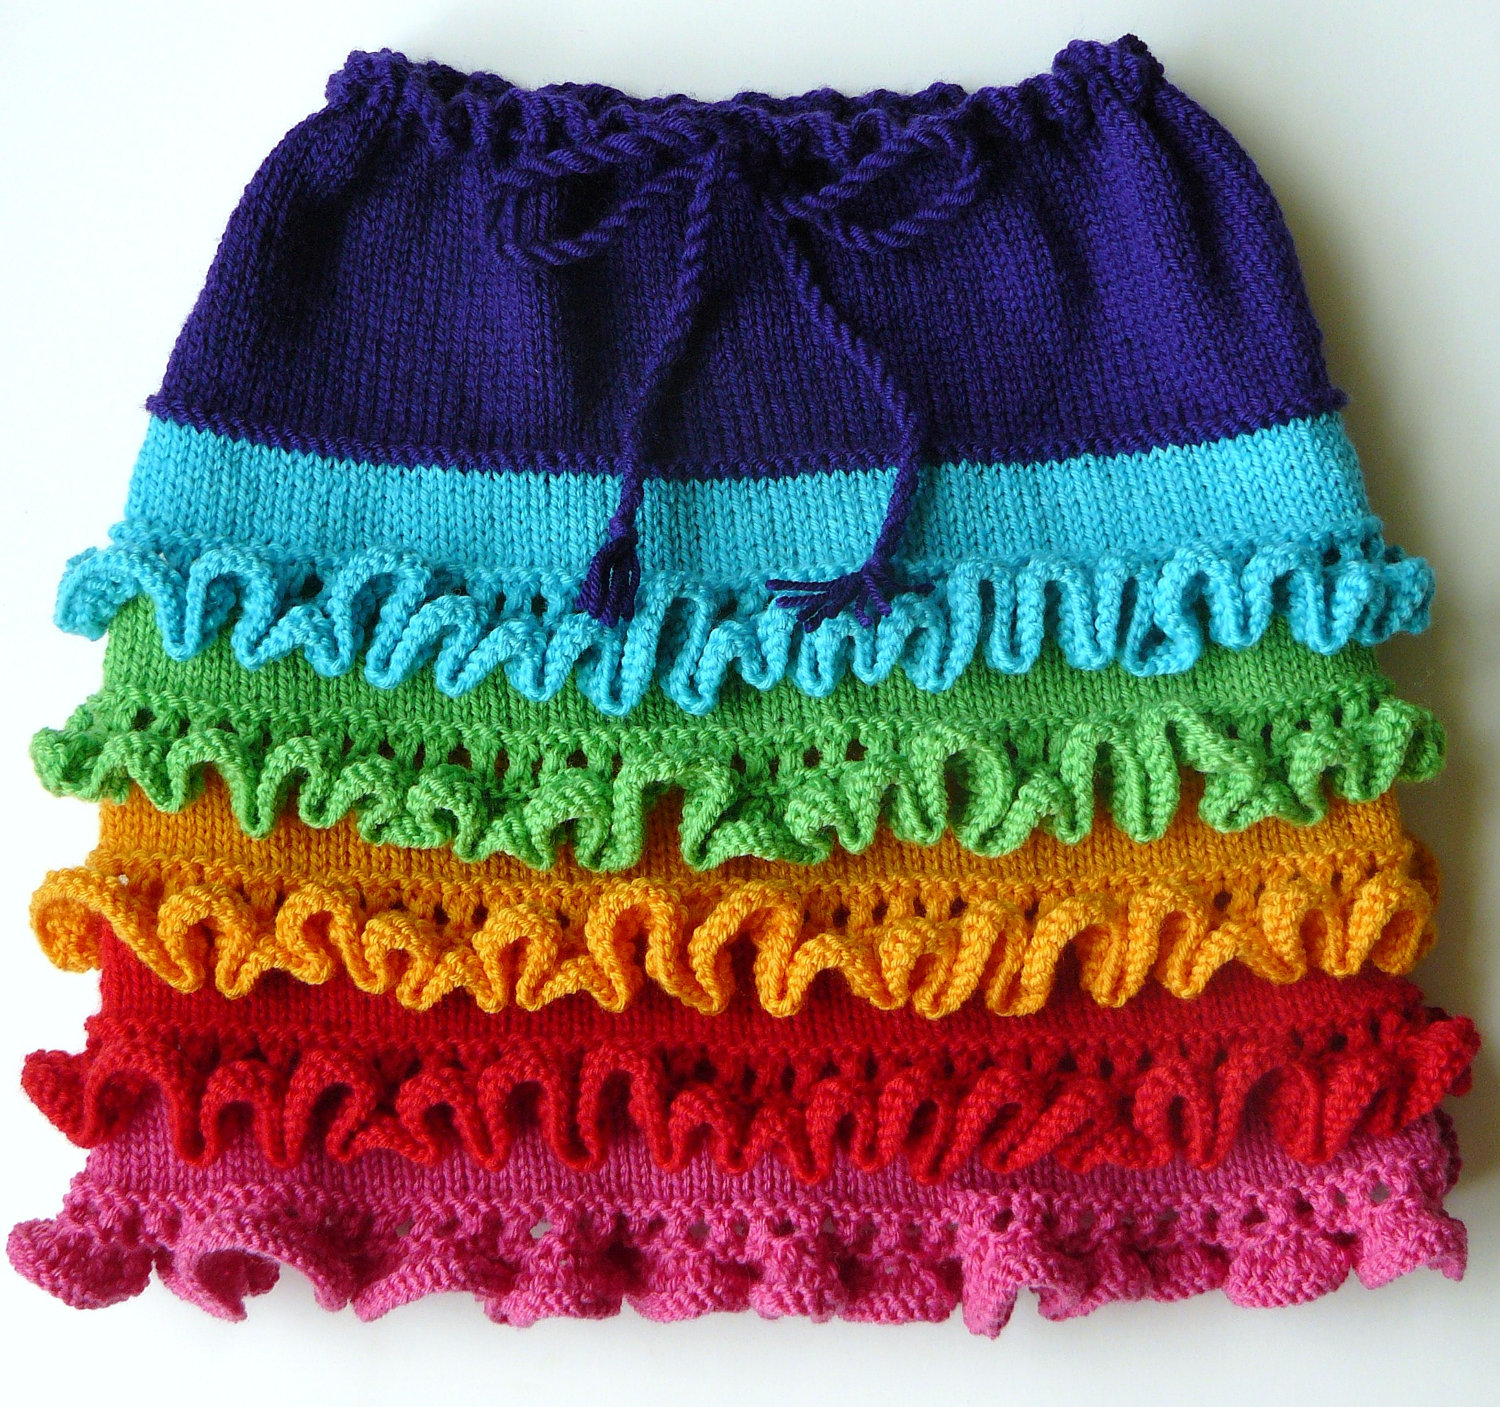 Knitting Pattern for Rainbow Tiered Skirt